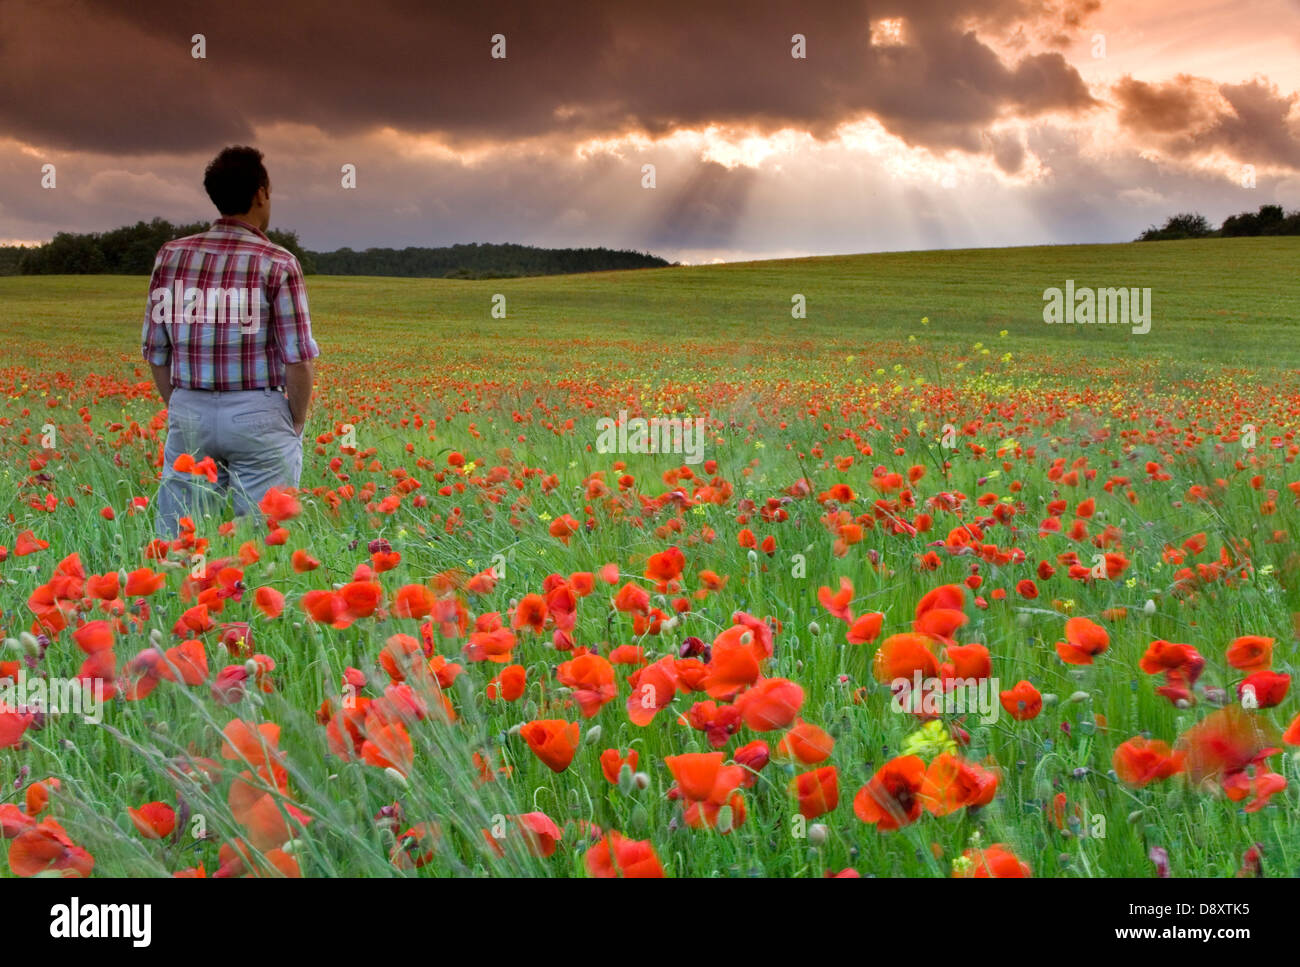 man watching storm clouds on a poppy field - Stock Image